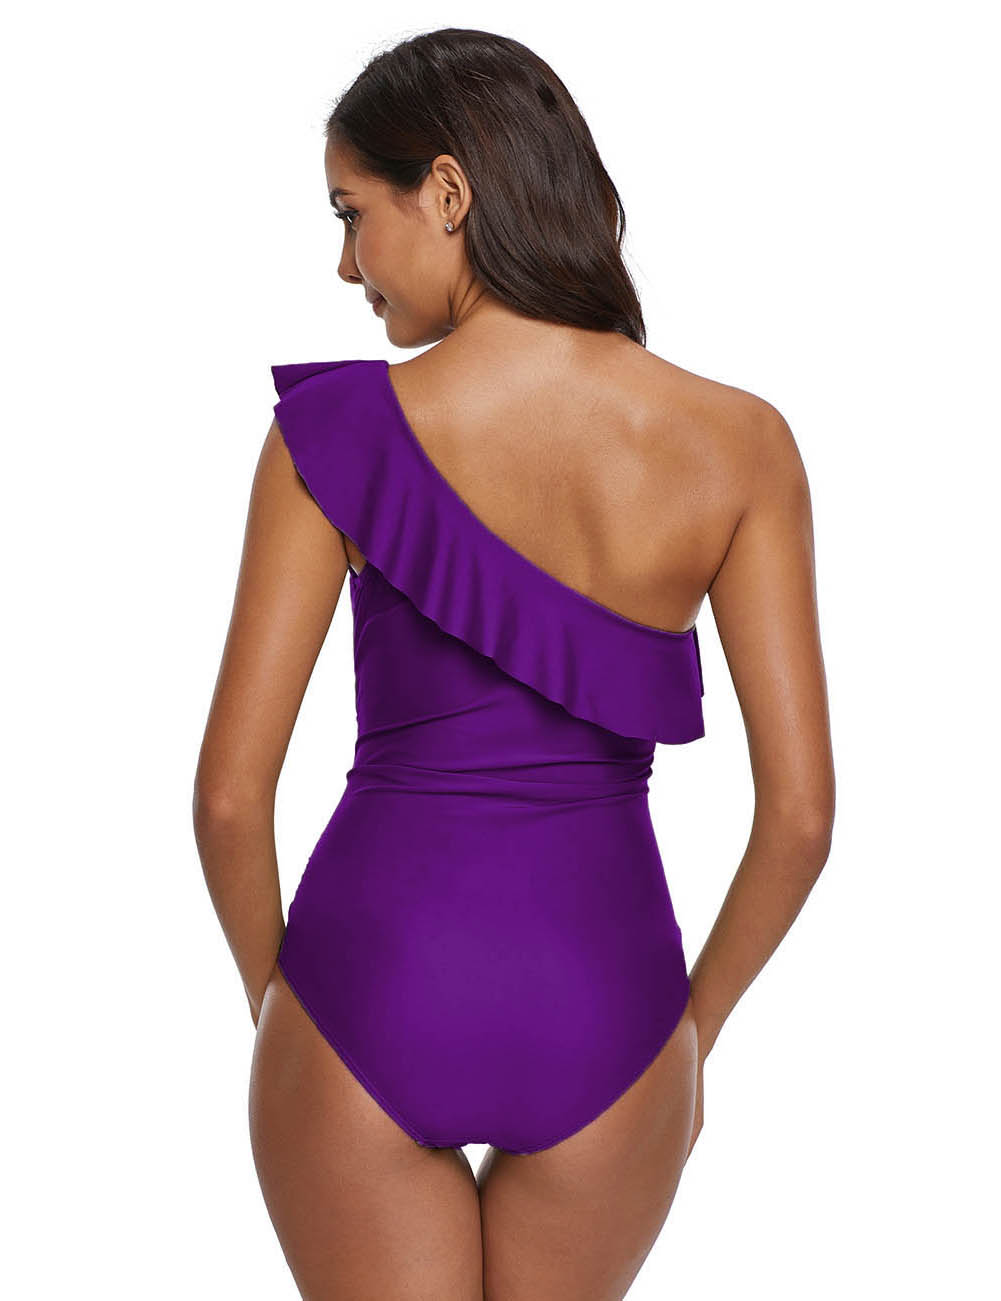 //cdn.affectcloud.com/hexinfashion/upload/imgs/Swimwear/One_Piece_Swimwear/F185037-PL1/F185037-PL1-201911065dc2ac3e2d5c2.jpg